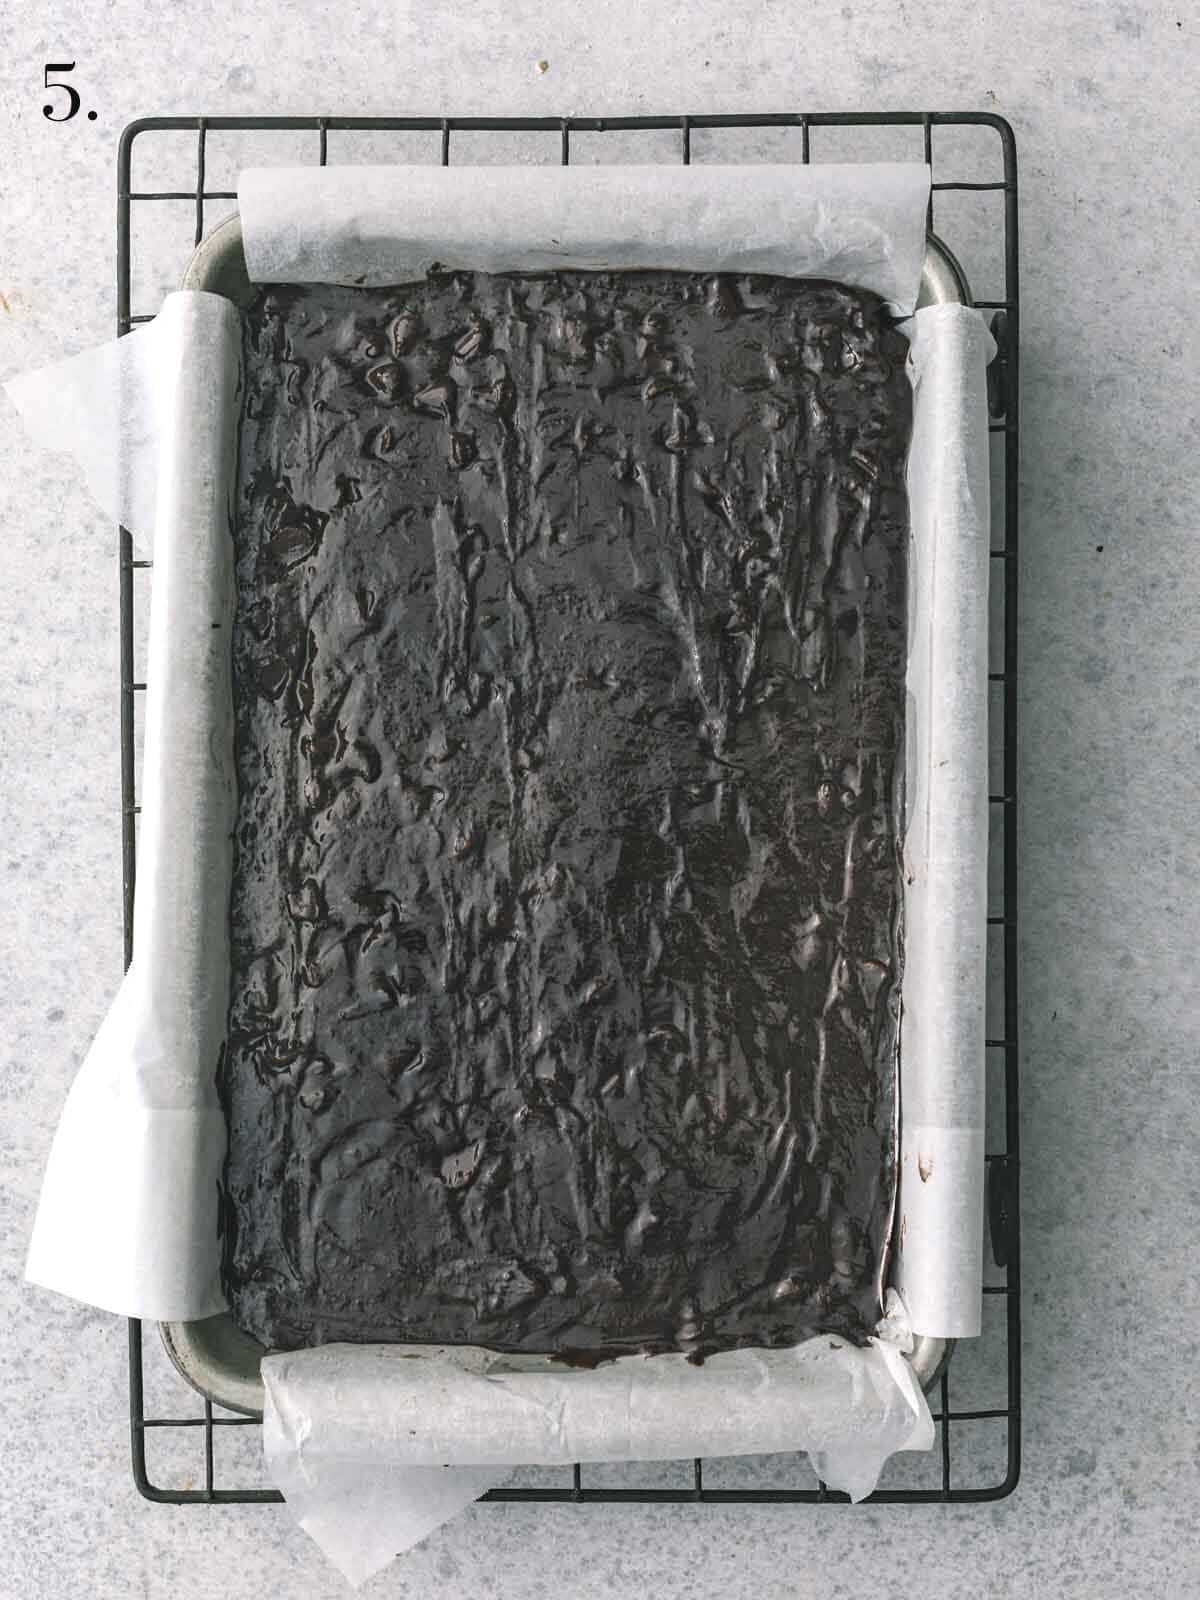 Unbaked brownie in a baking tray.